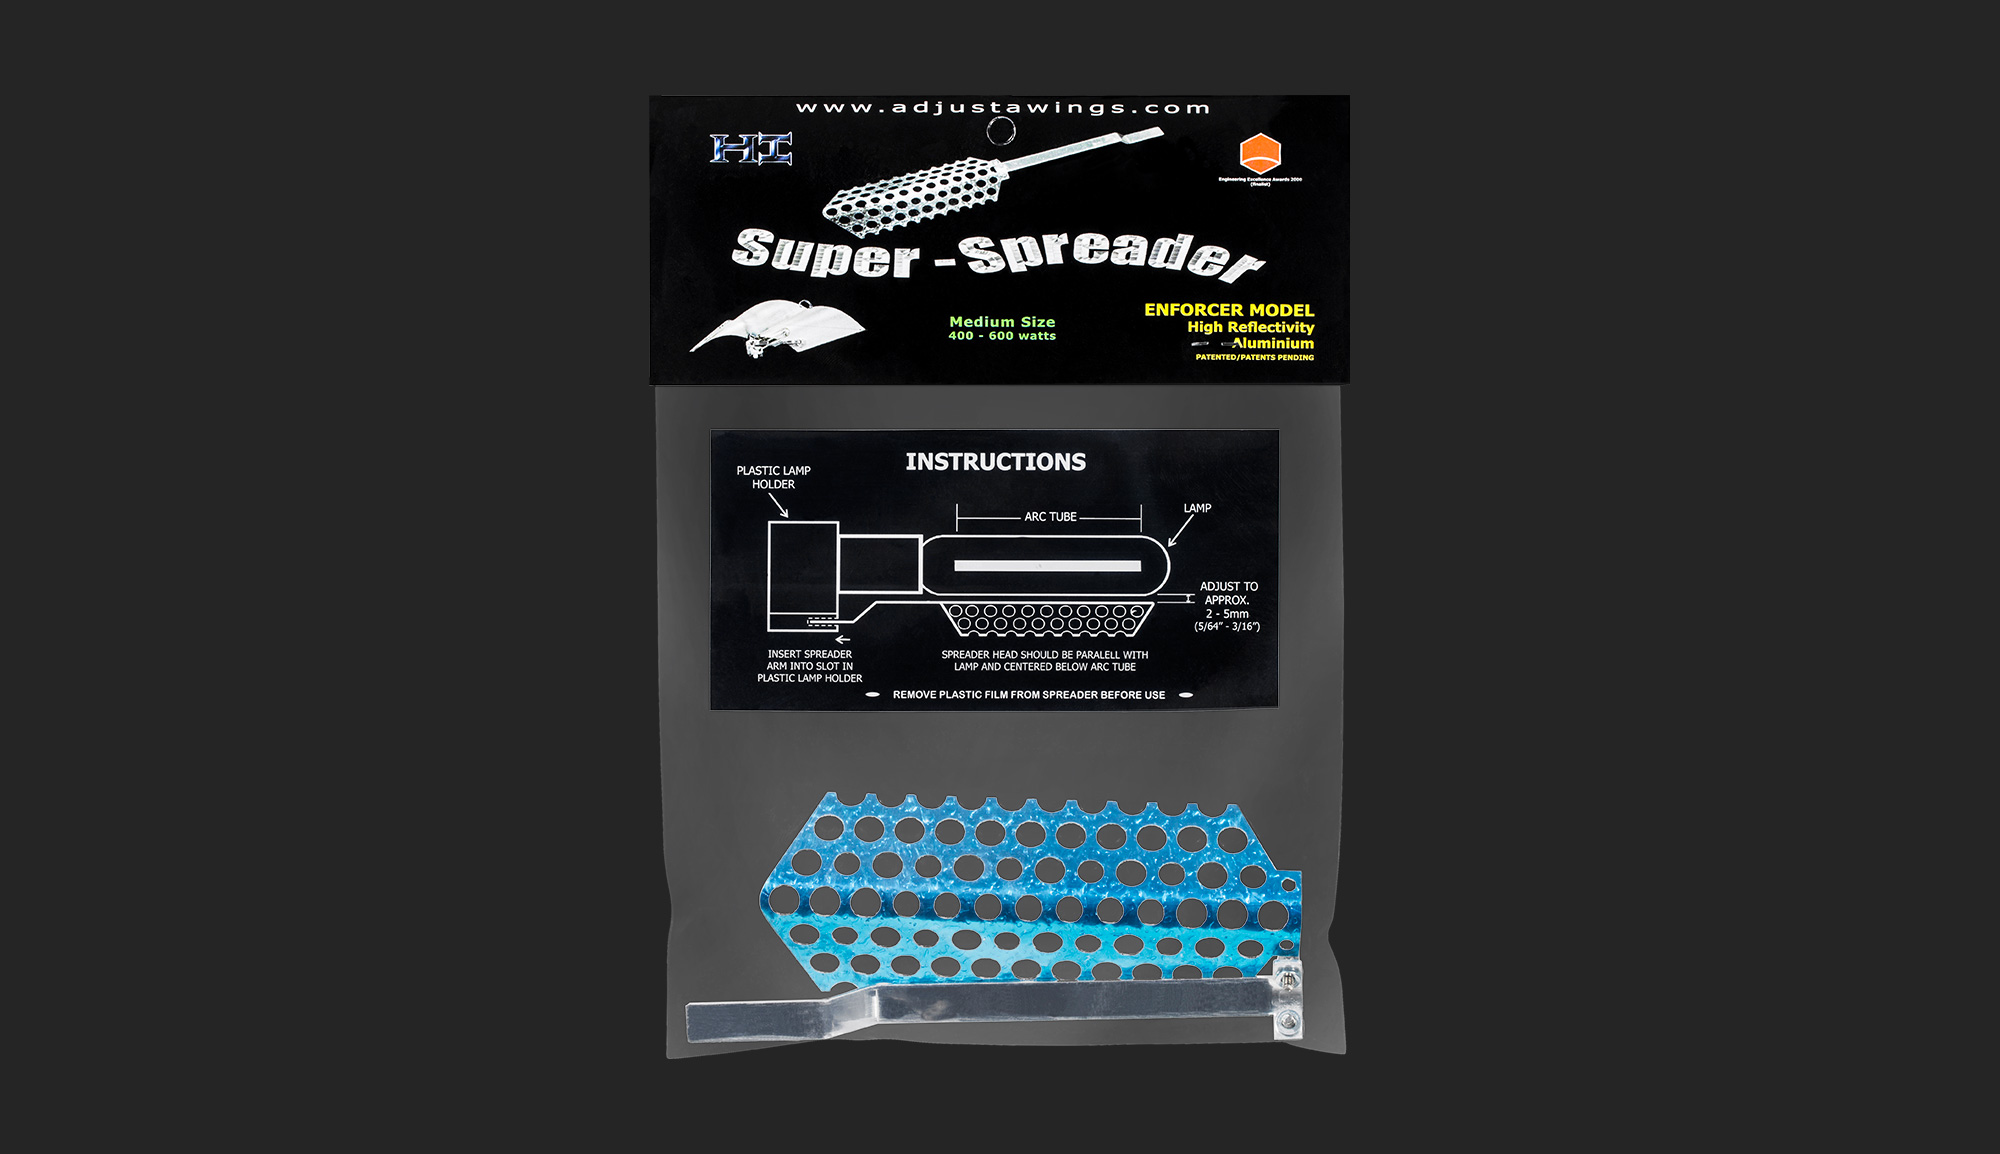 Enforcer Medium Super Spreader - Adjust-A-Wings